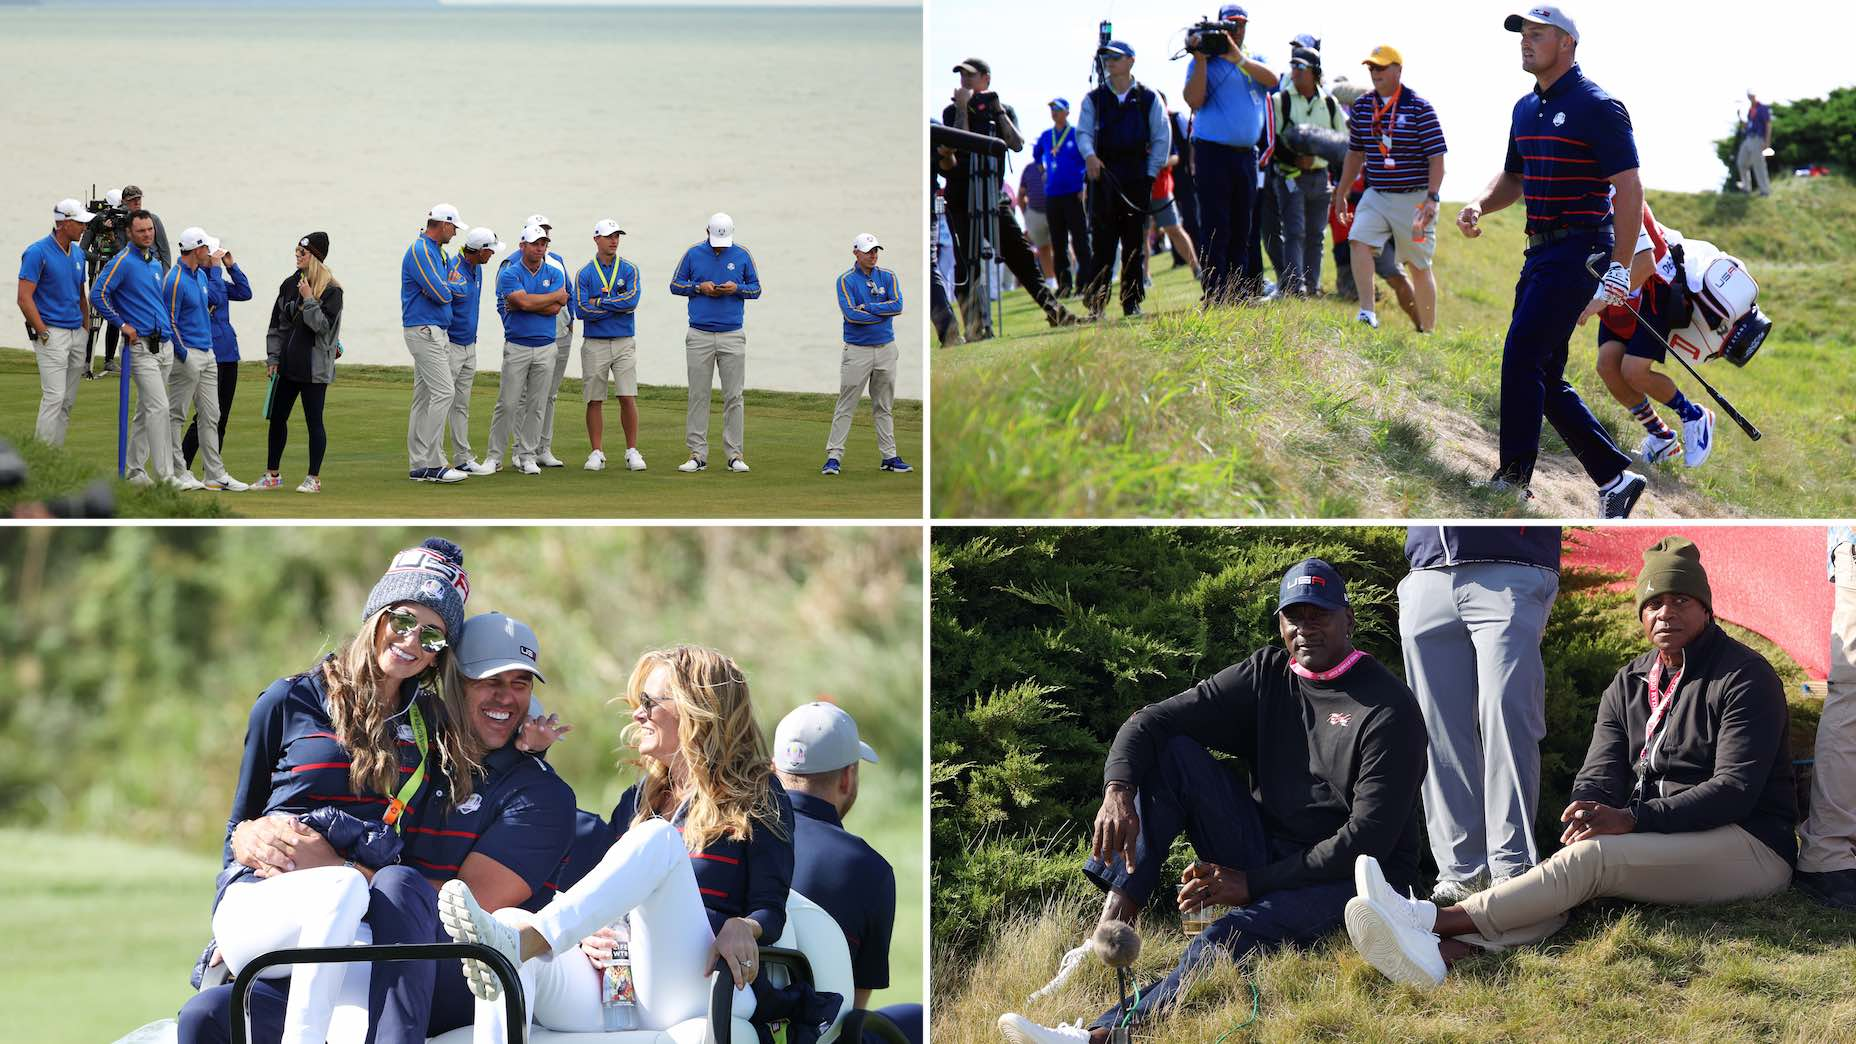 Who are the VIPs walking inside the ropes at the Ryder Cup?